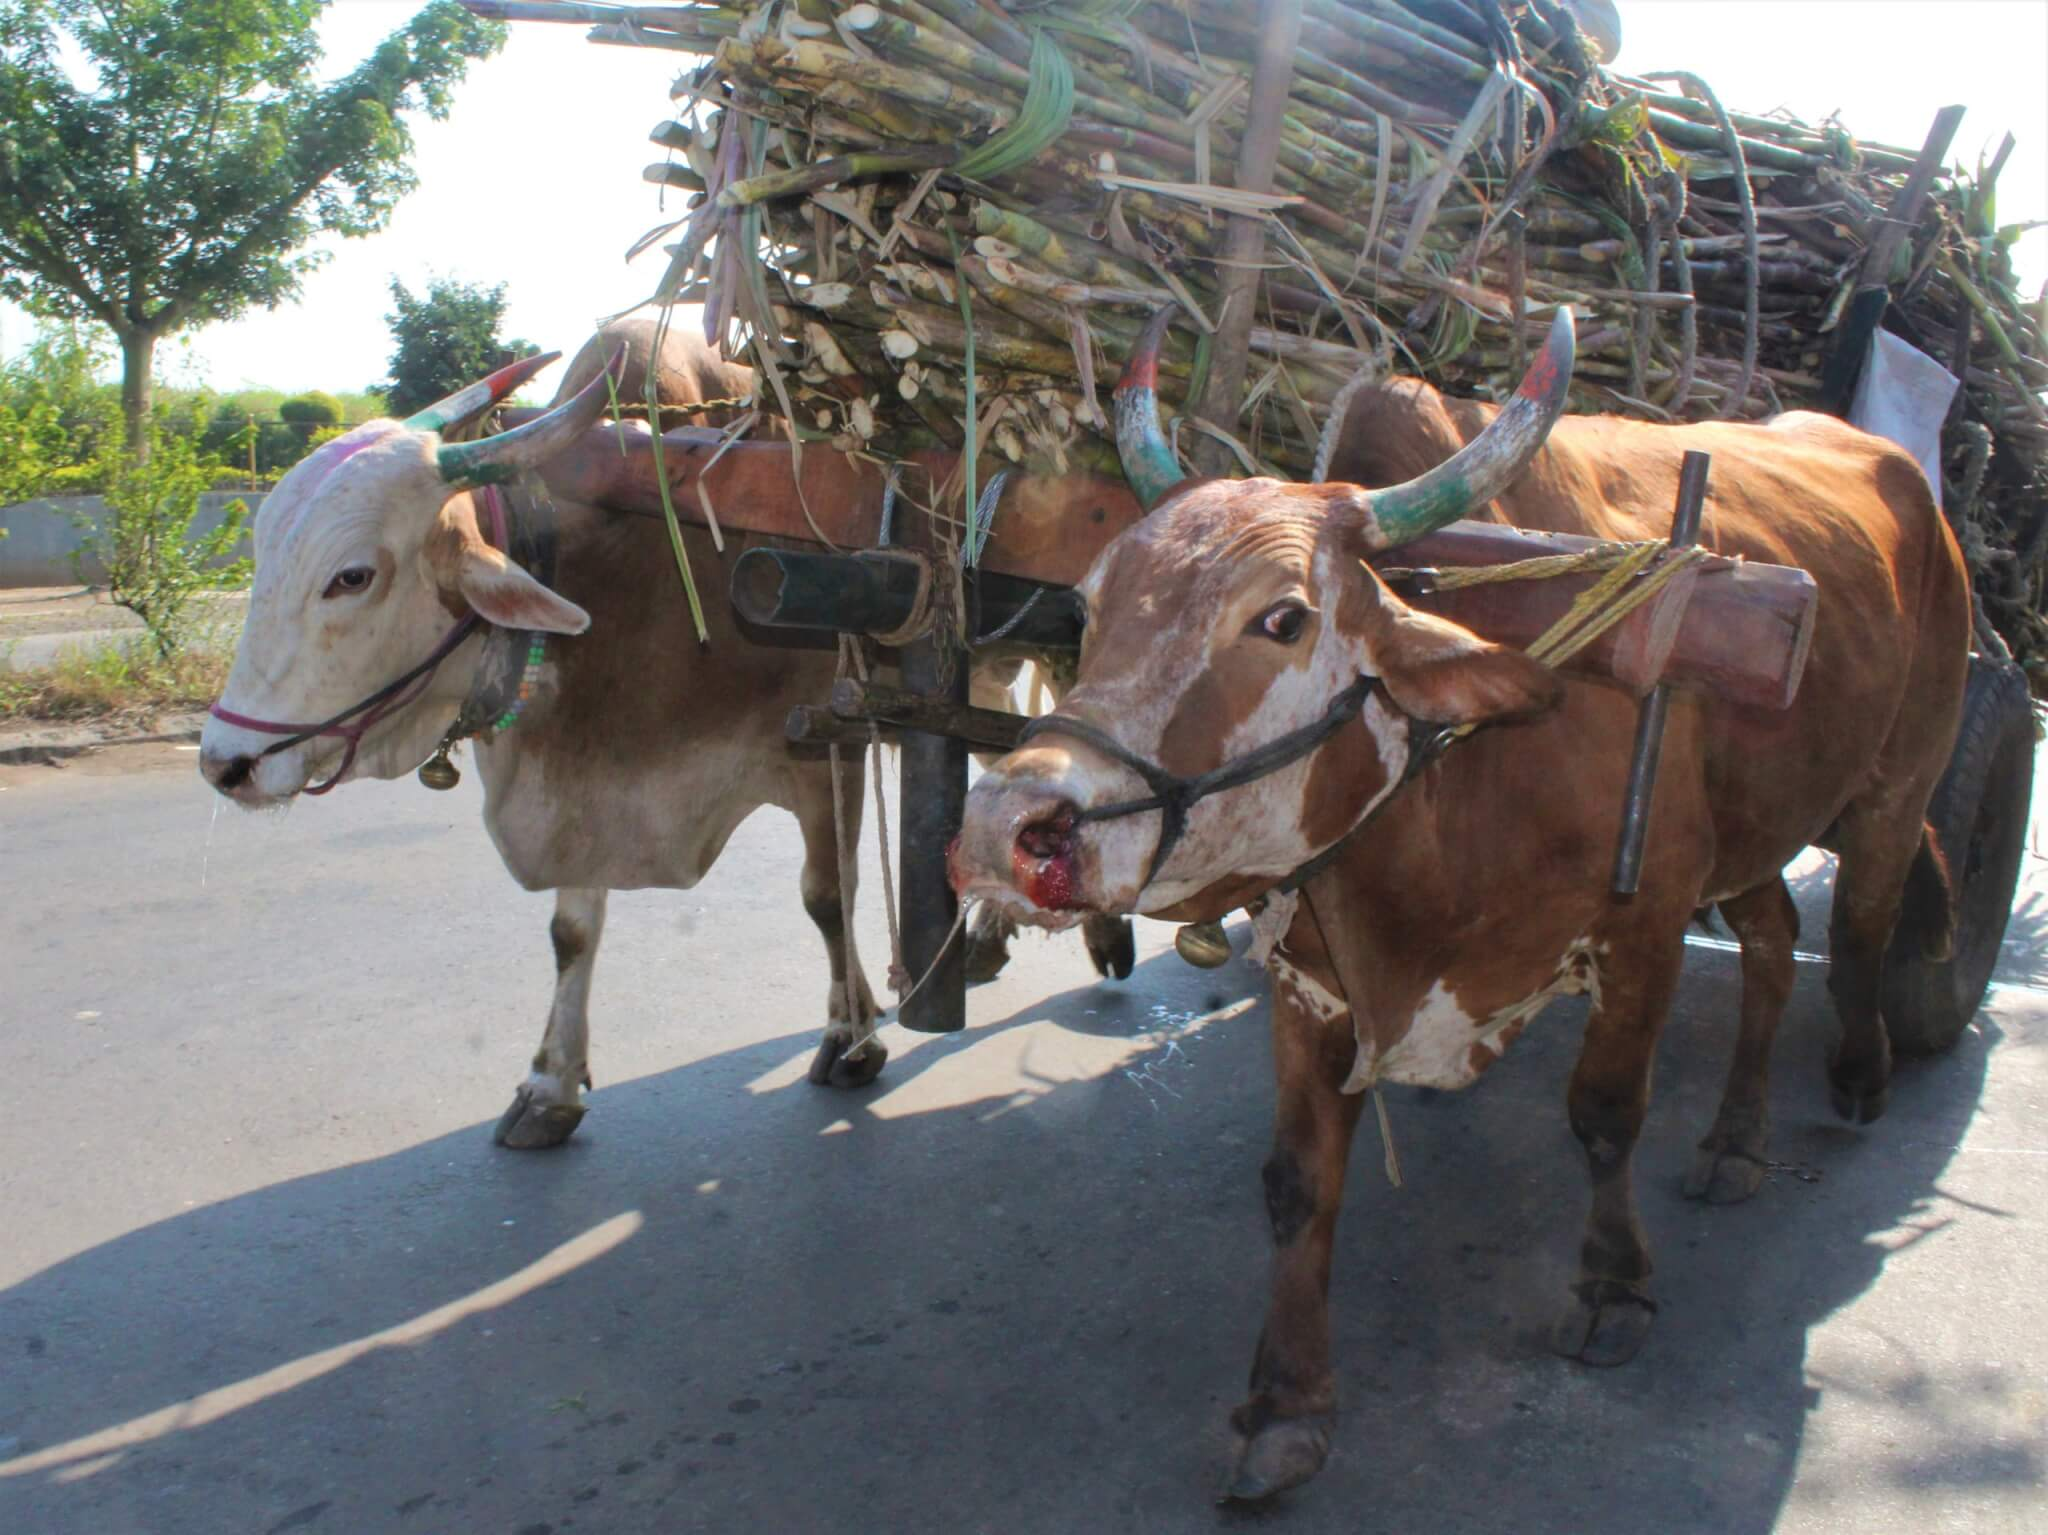 Bullocks Jay and Kishan strain under the weight of a cart piled high with sugarcane. Jay's facial expression is full of distress and blood drips from his nose.